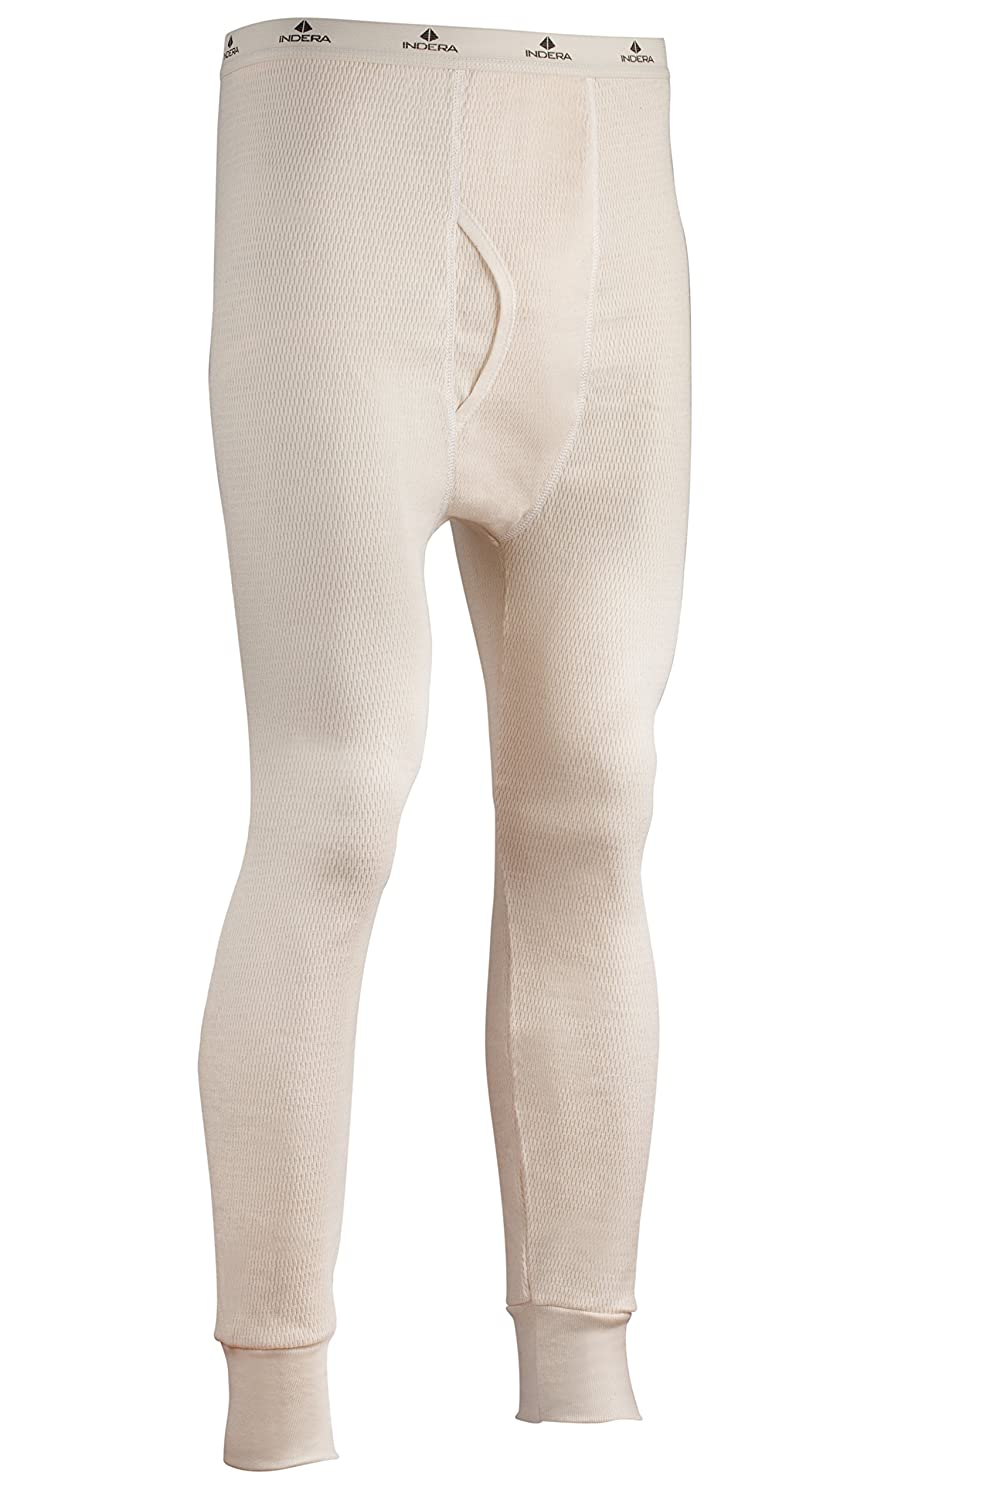 Indera Mens Expedition Weight Cotton Raschel Knit Thermal Underwear Pant